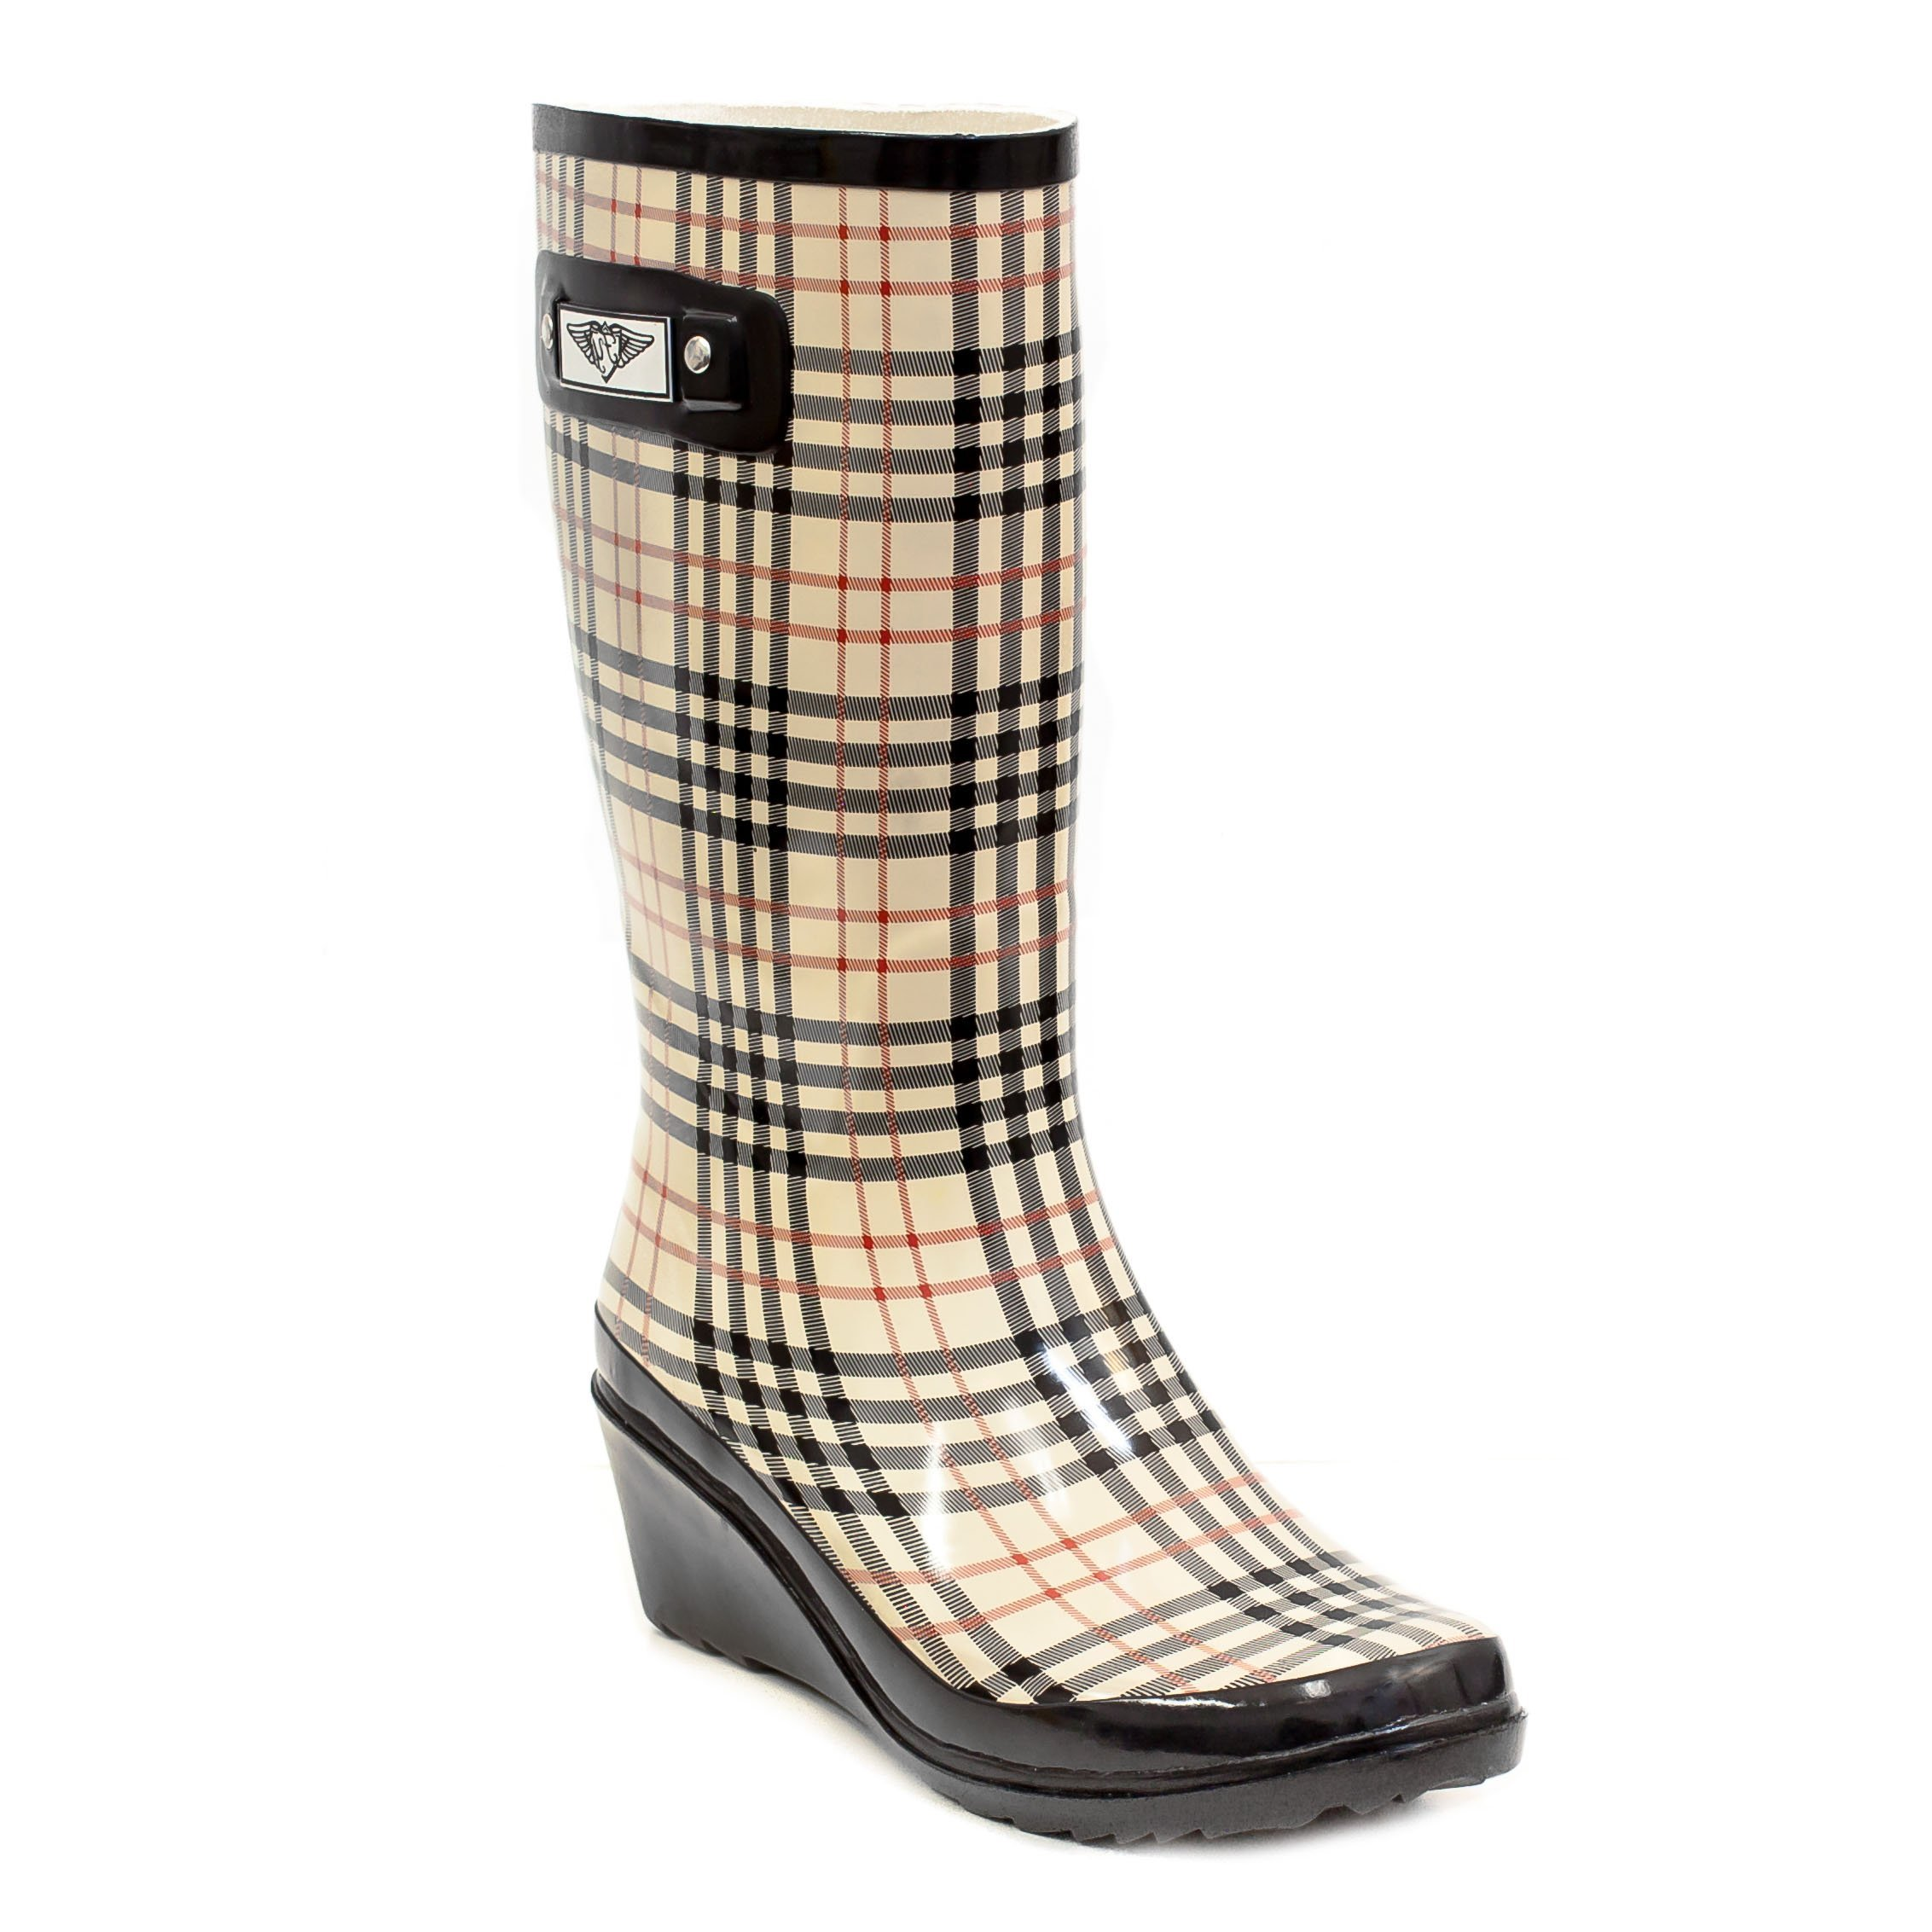 Women Cotton Lined Rubber Rain Boots w/ Wedge Heel (Checkers Plaid,7)